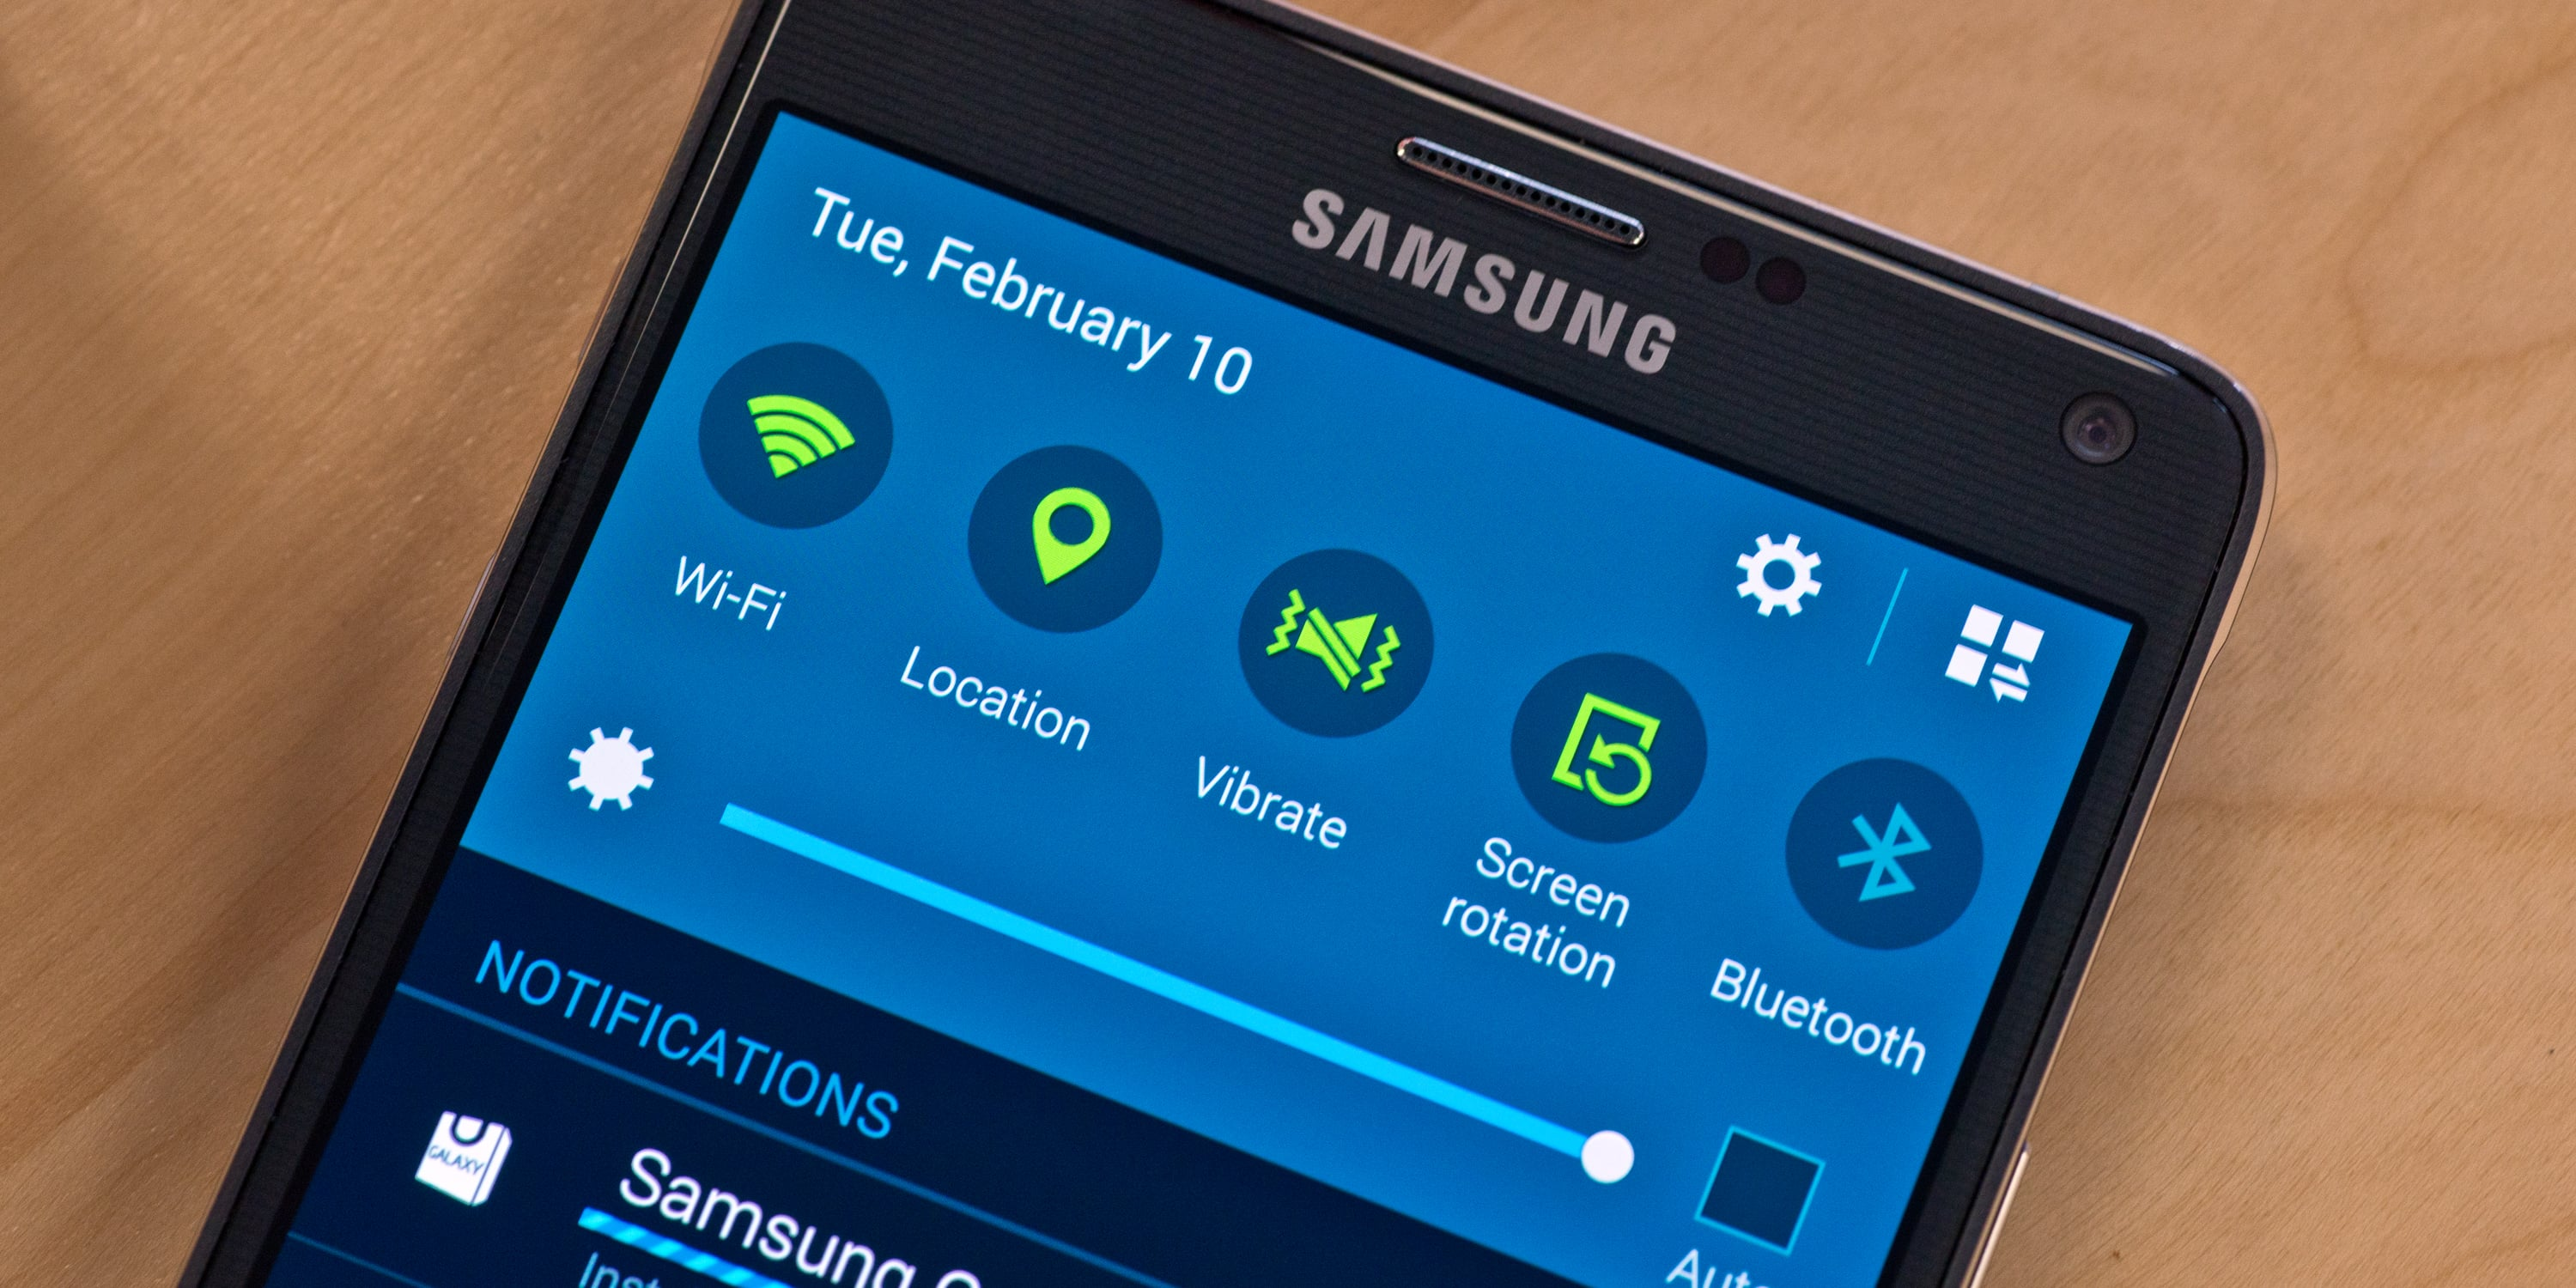 A photograph of the Samsung Galaxy Note 4's power menu.